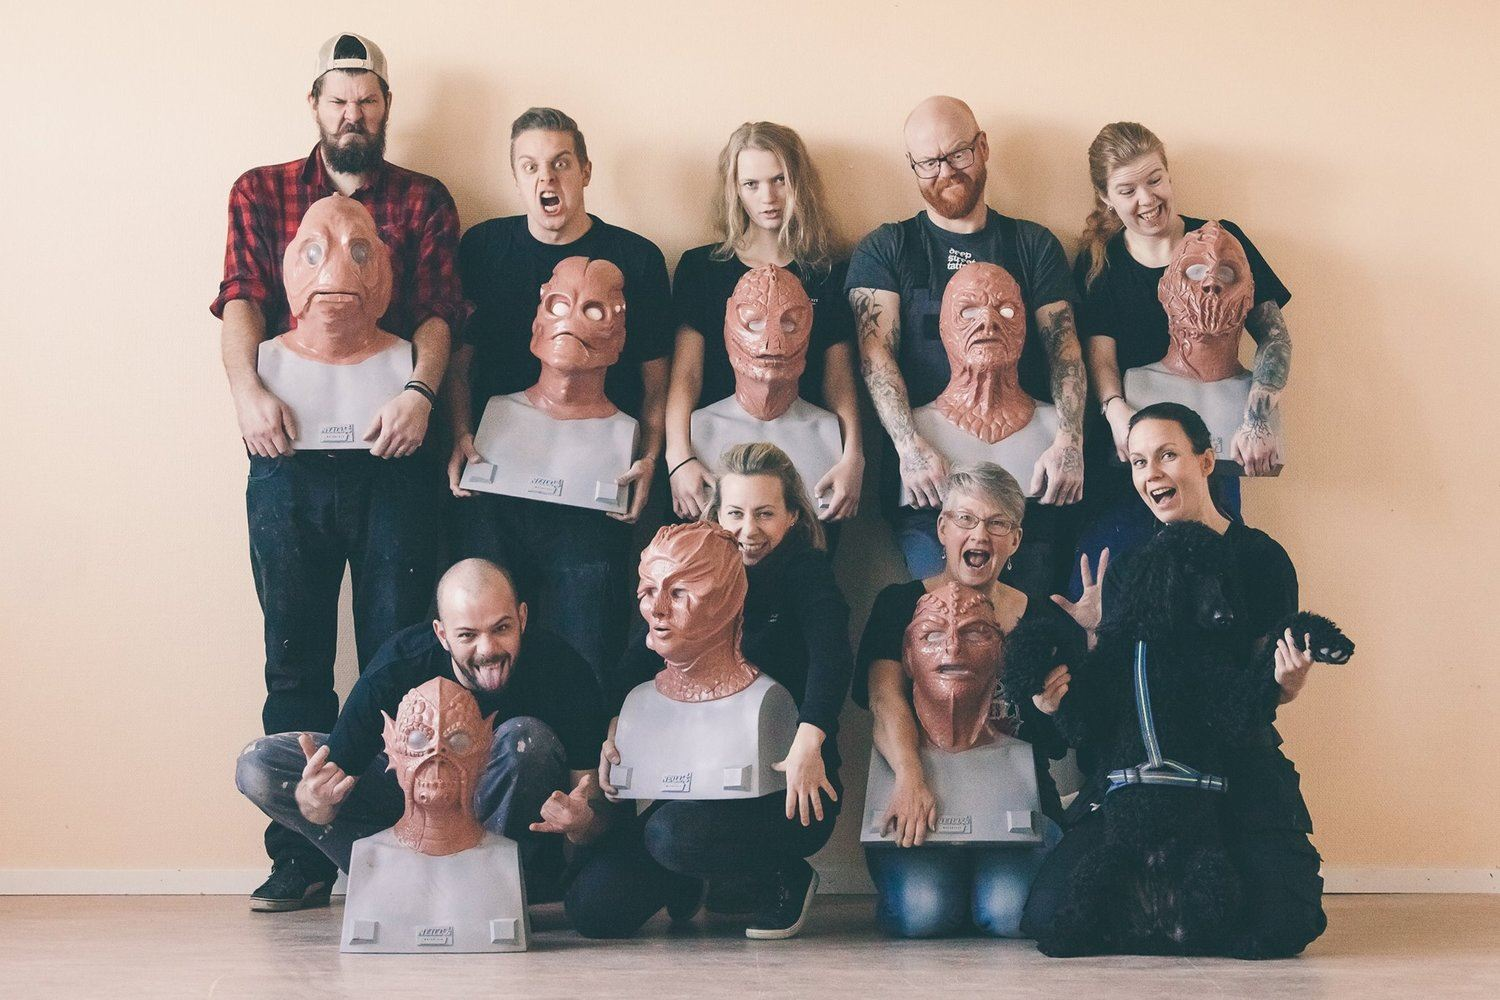 10-day silicone mask making workshop at Helsinglight FX - Sweden